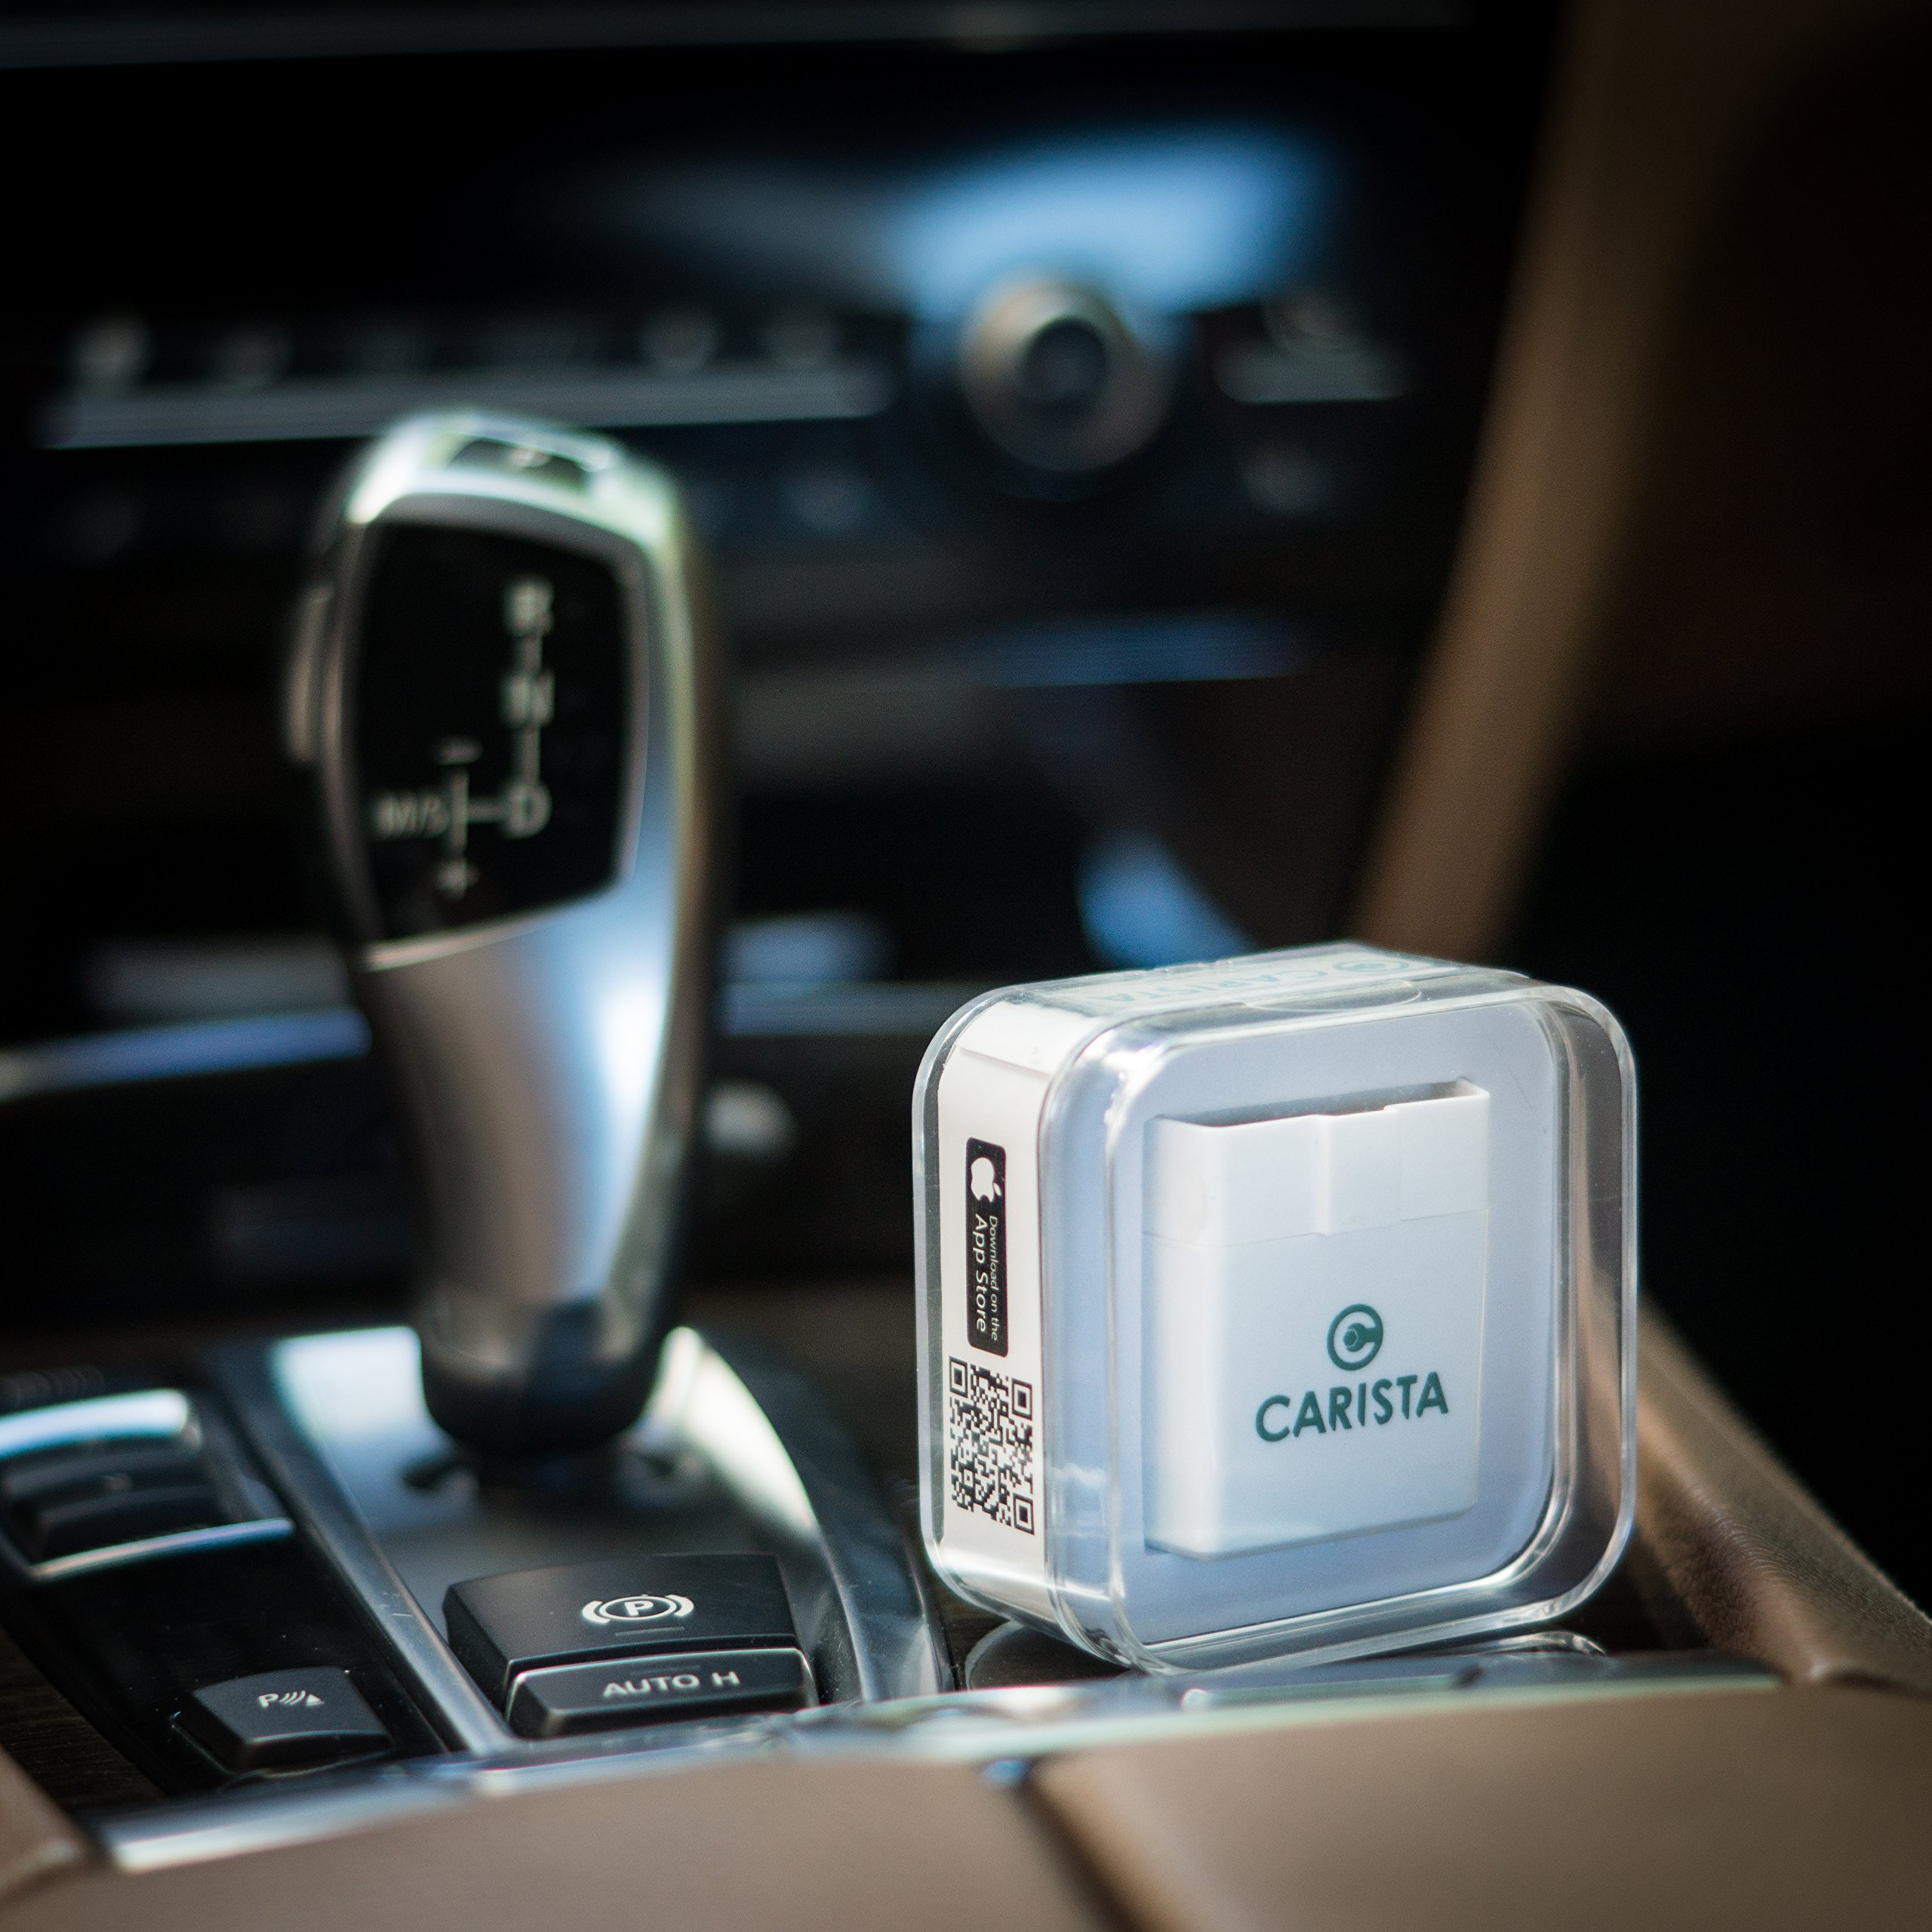 Carista Bluetooth OBD2 Adapter is one of the Best OBD2 scan tools for Car in 2018 that allows you to hook up your phone or tablet